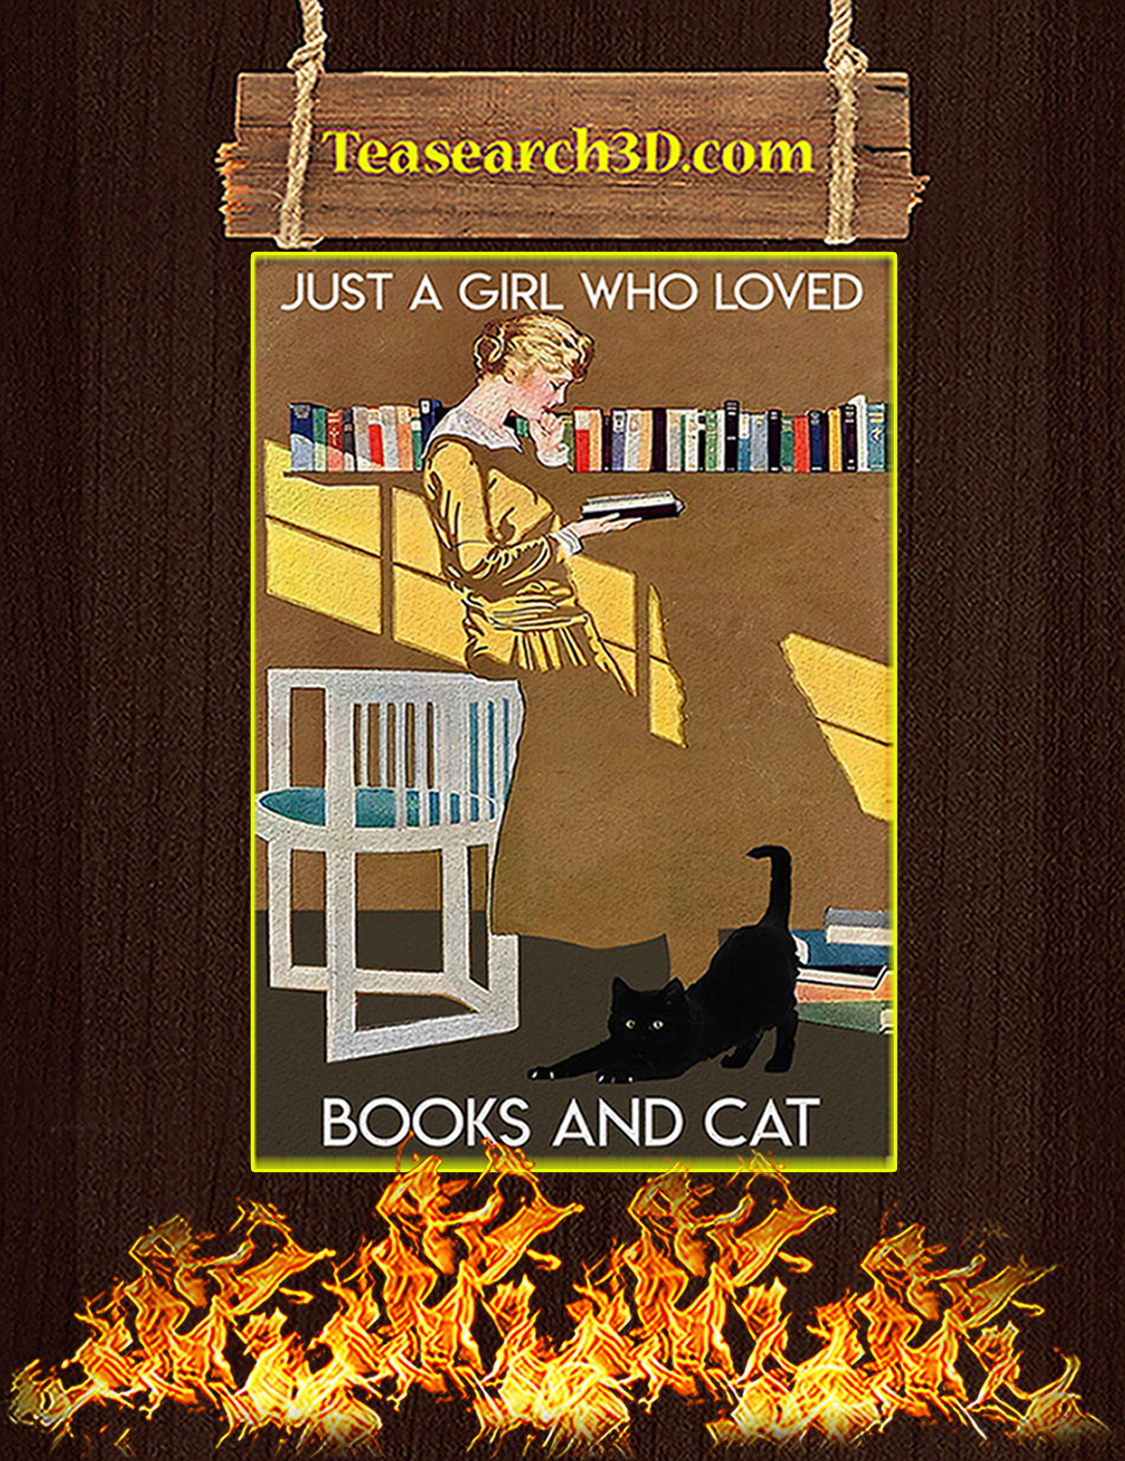 Just a girl who loved books and cat poster A3